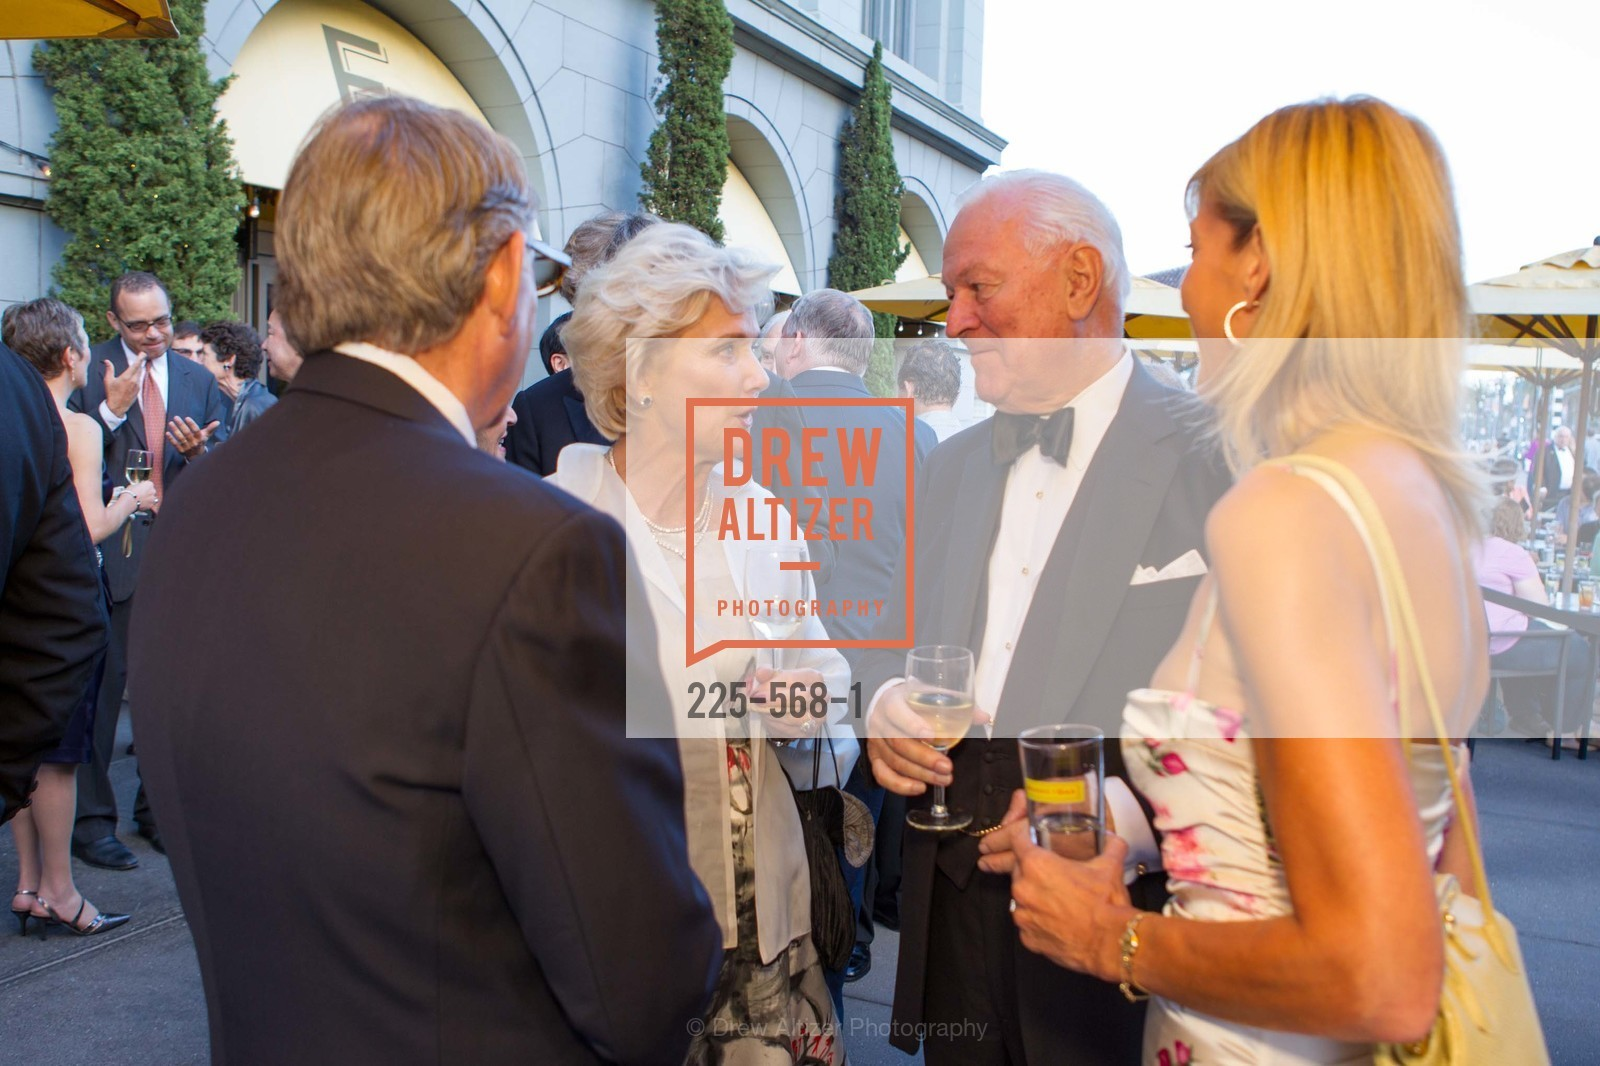 Judy Wilbur, Dick Otter, SOTHEBY'S  Hosts a Private Viewing of Highlights from the Collection of MRS. PAUL MELLON, US, September 17th, 2014,Drew Altizer, Drew Altizer Photography, full-service event agency, private events, San Francisco photographer, photographer California